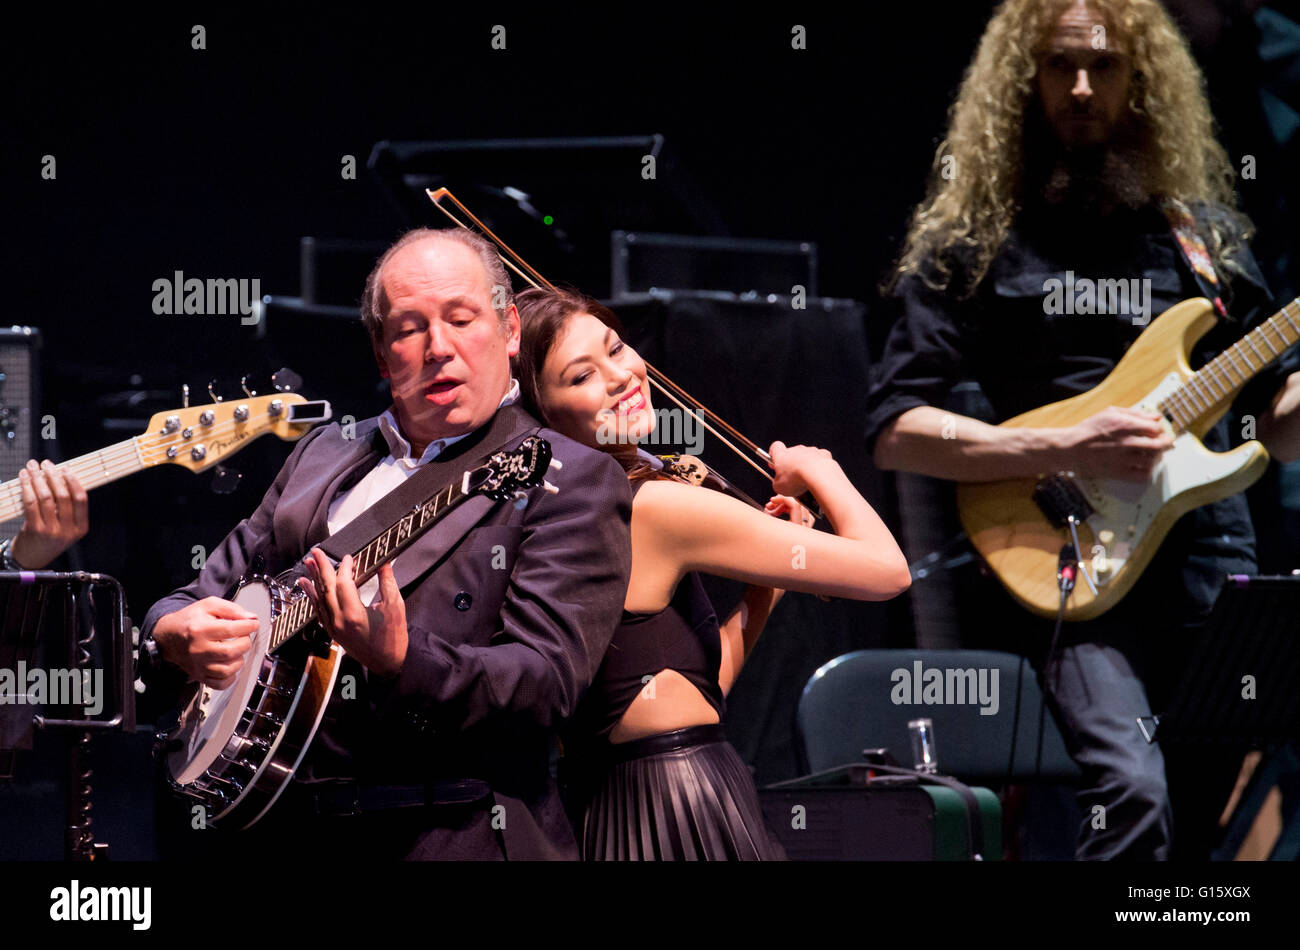 Image Result For Royalty Free Hans Zimmer Music